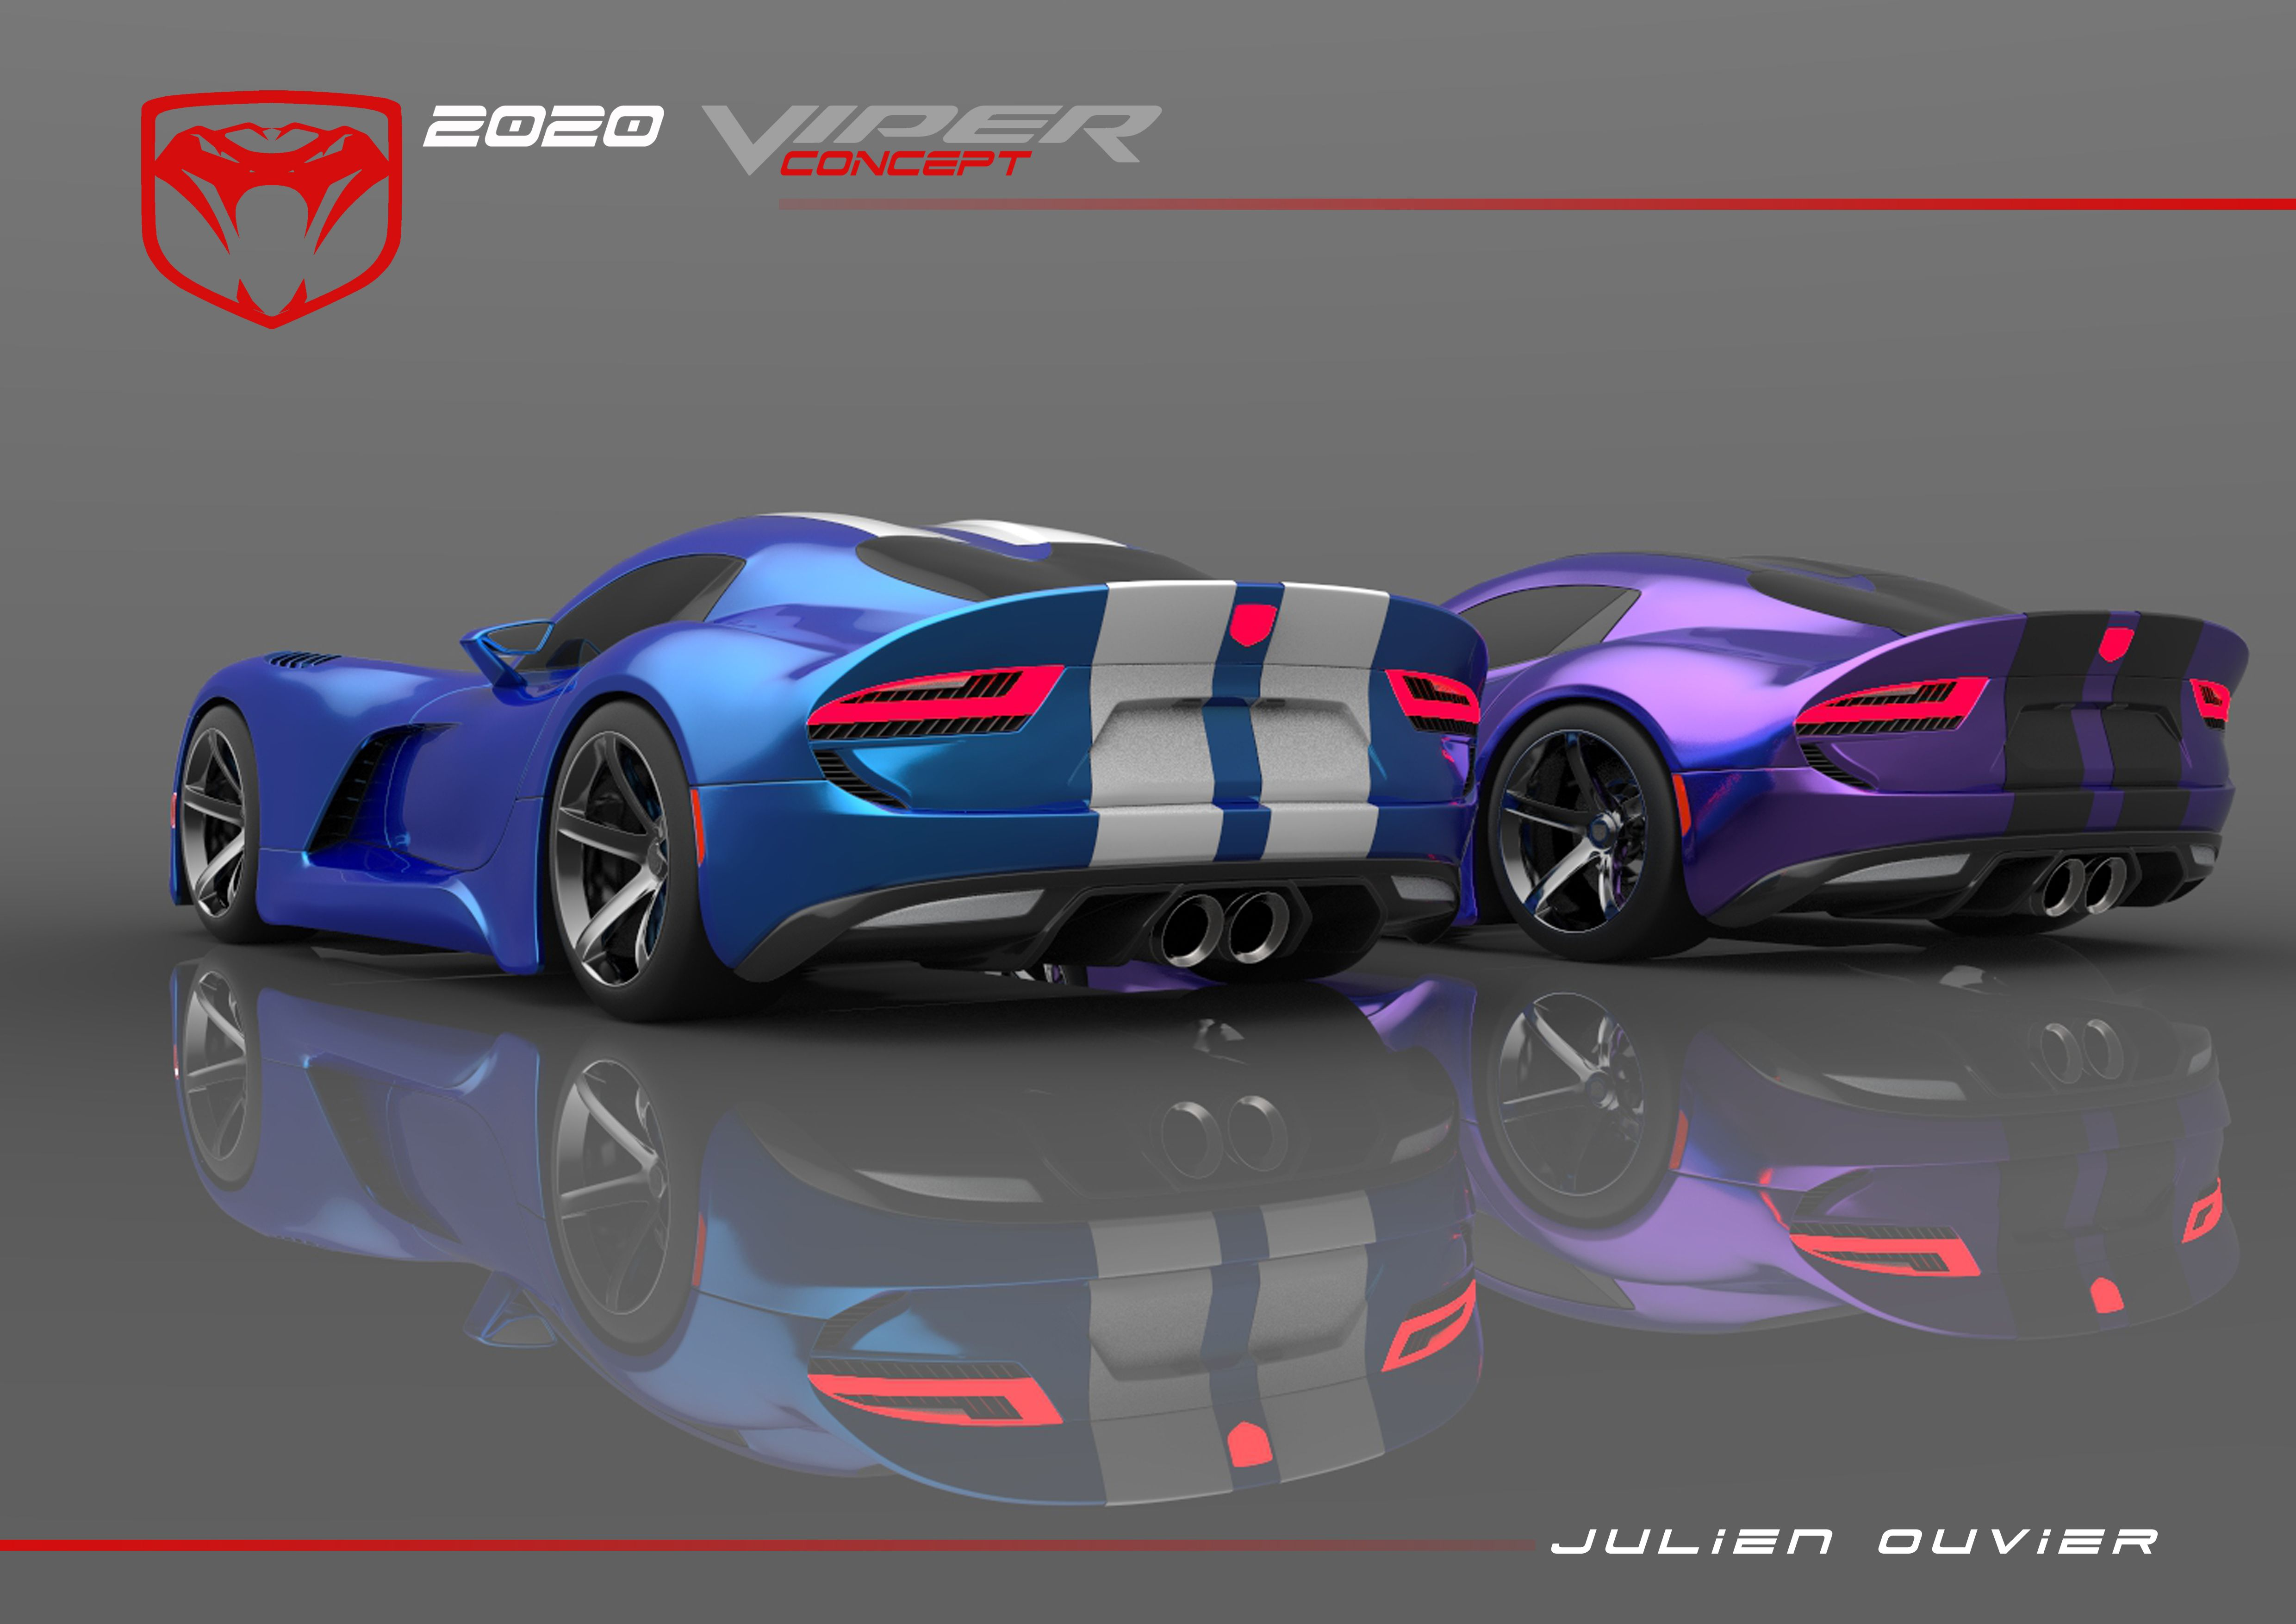 2020 Viper Concept By Julien Ouvier Copyrights Julien Ouvier Dodge Viper Dodge Nissan Skyline